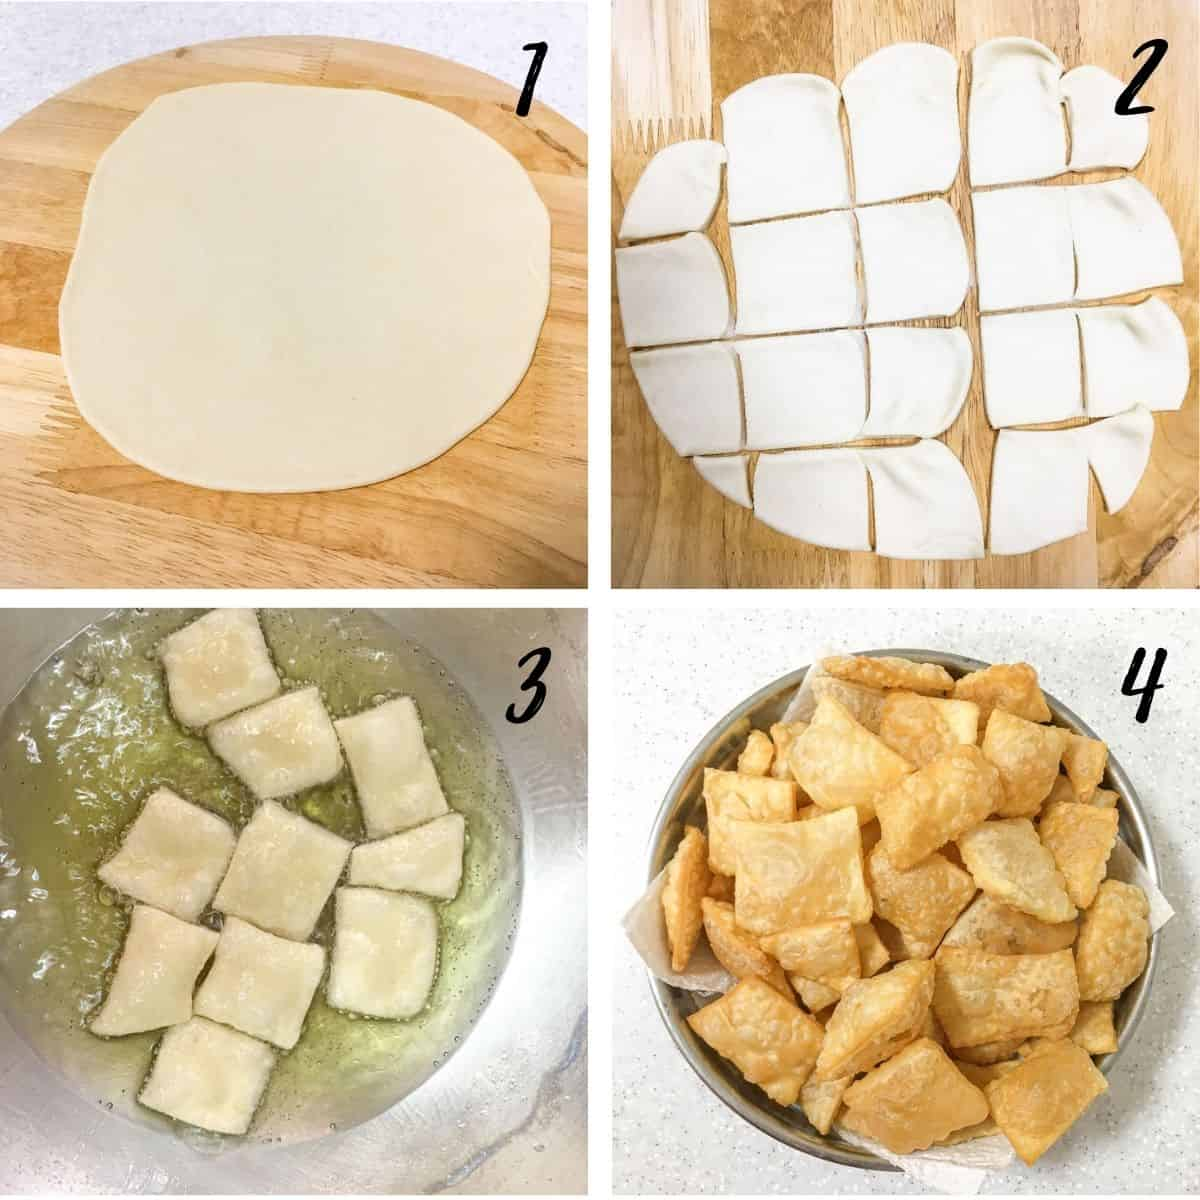 A poster of 4 images showing a piece of rolled dough, the dough cut into small pieces, the pieces of dough being deep fried and the fried dough on a bowl.